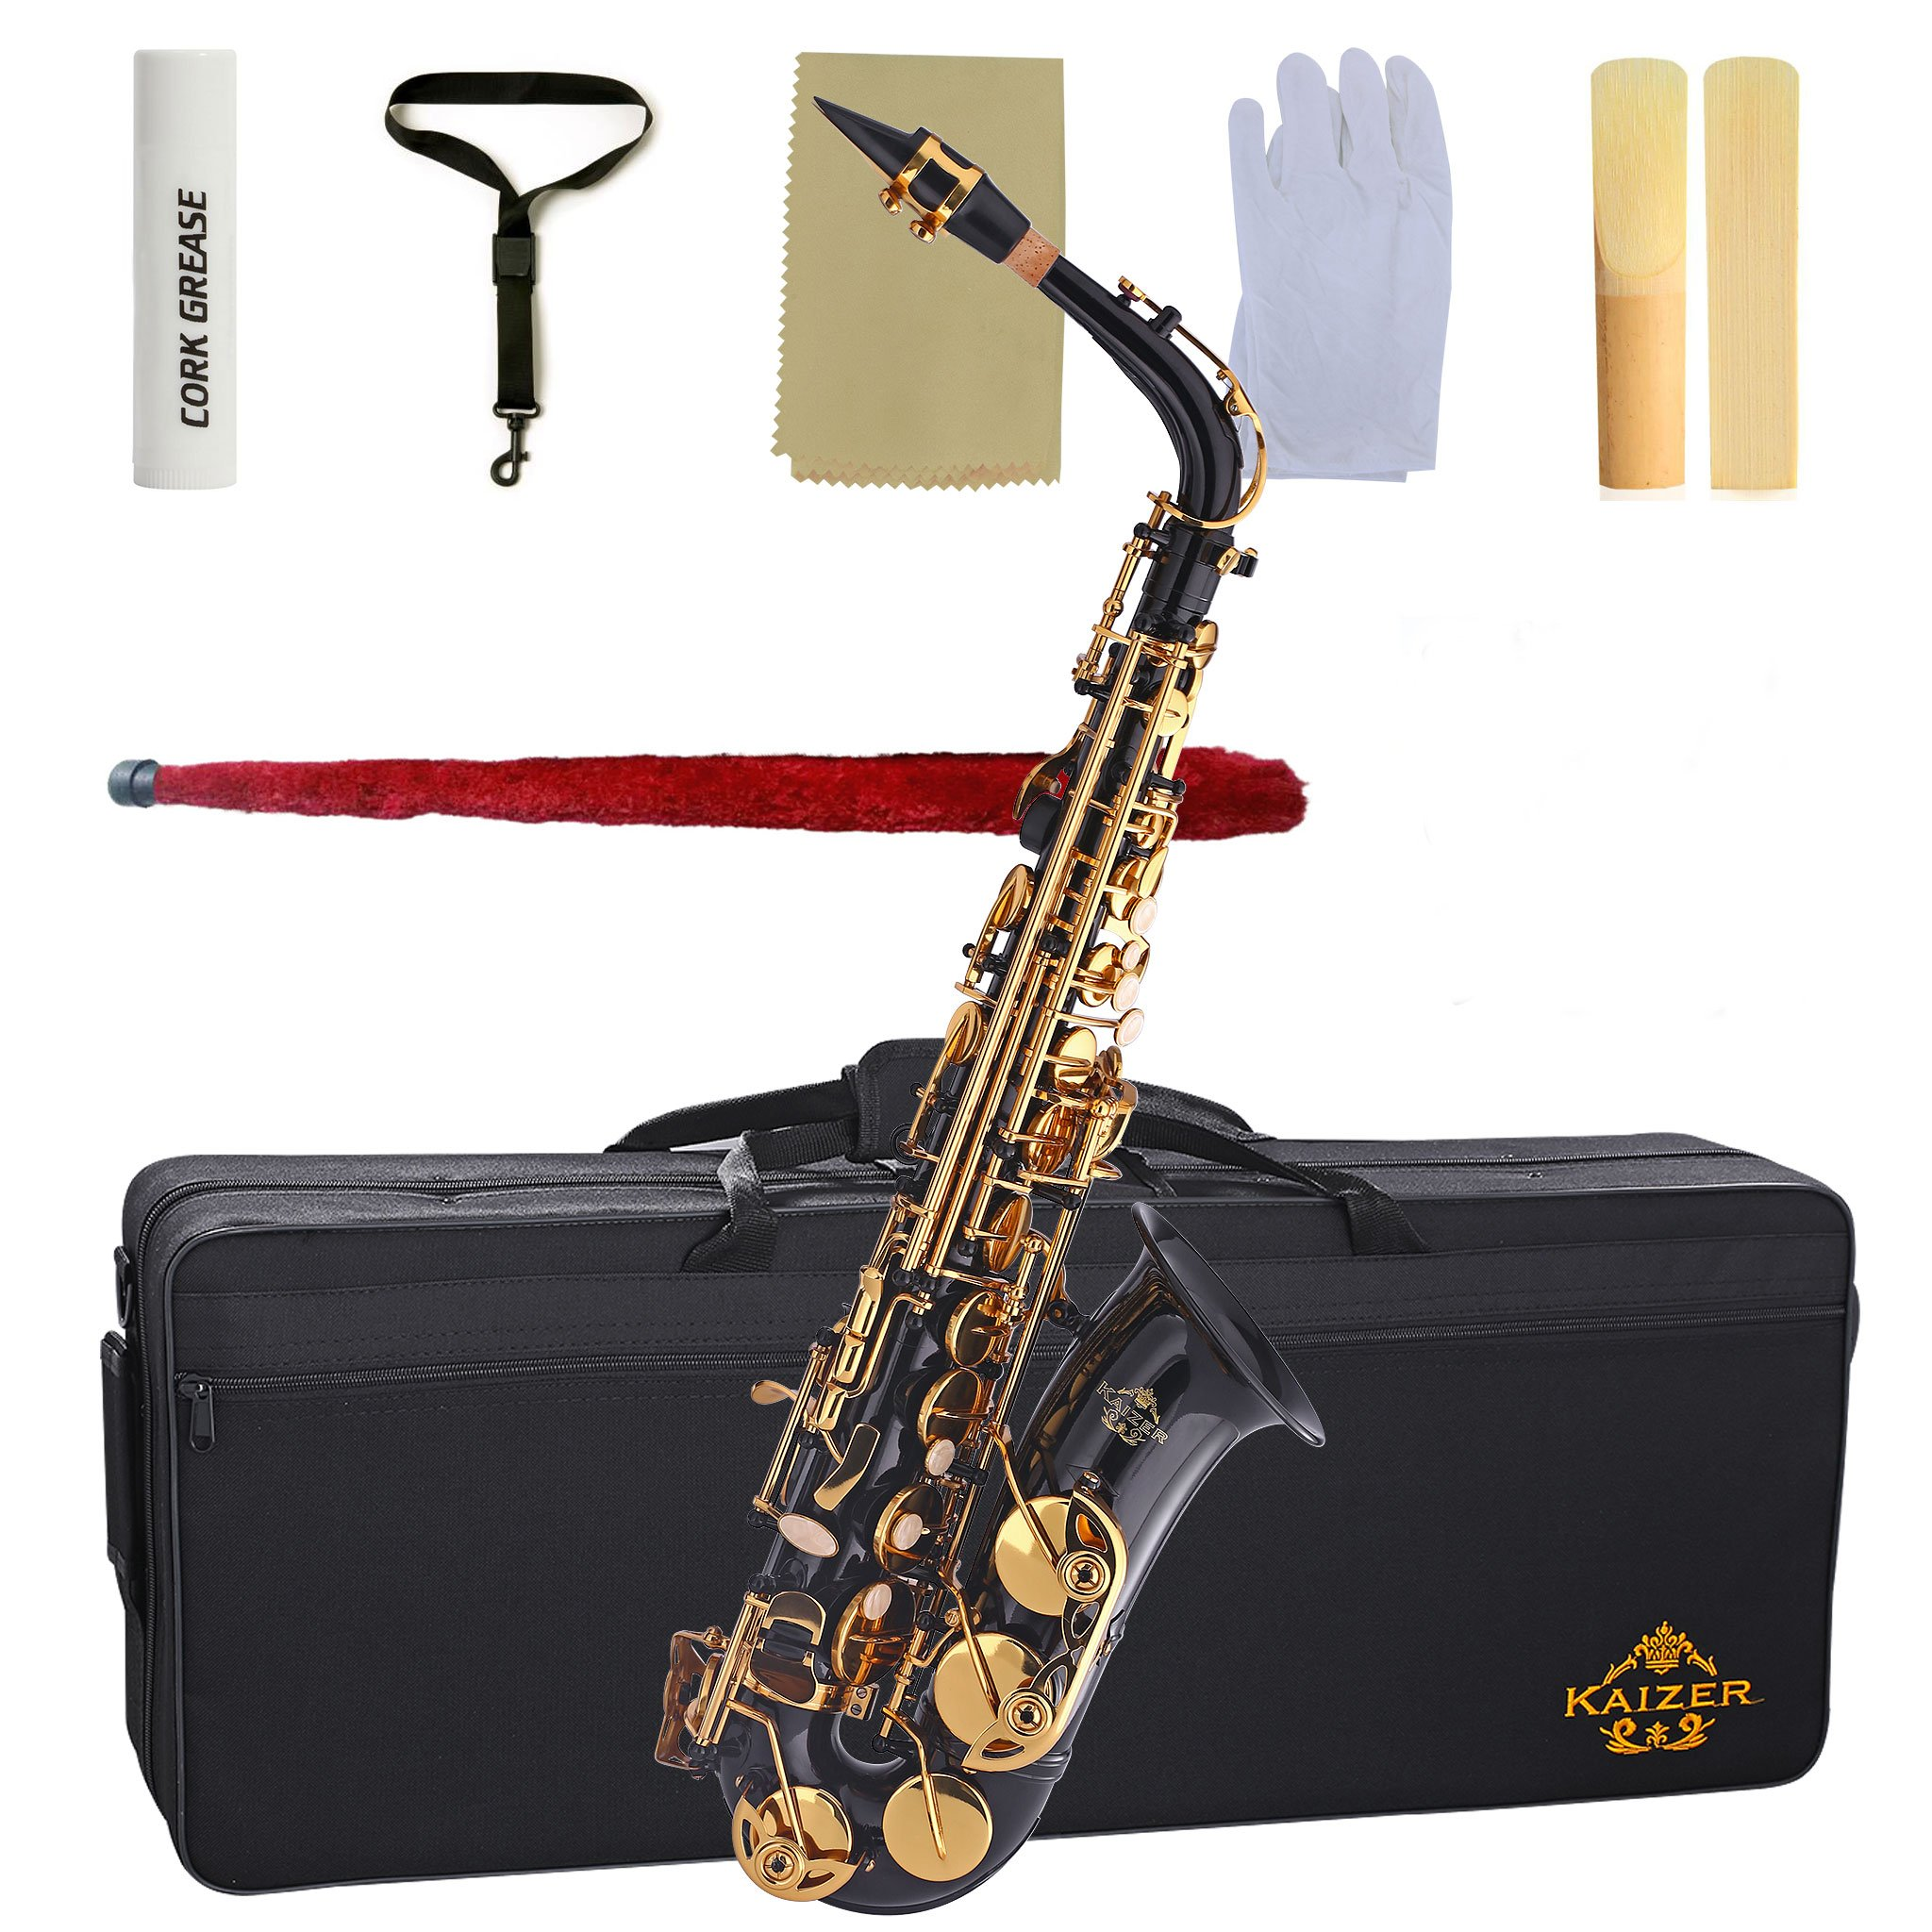 Kaizer Alto Saxophone E Flat Eb Black Lacquer Body Gold Keys 1000 Series Sax Includes Case Mouthpiece and Accessories ASAX-1000BKGK by Kaizer (Image #5)